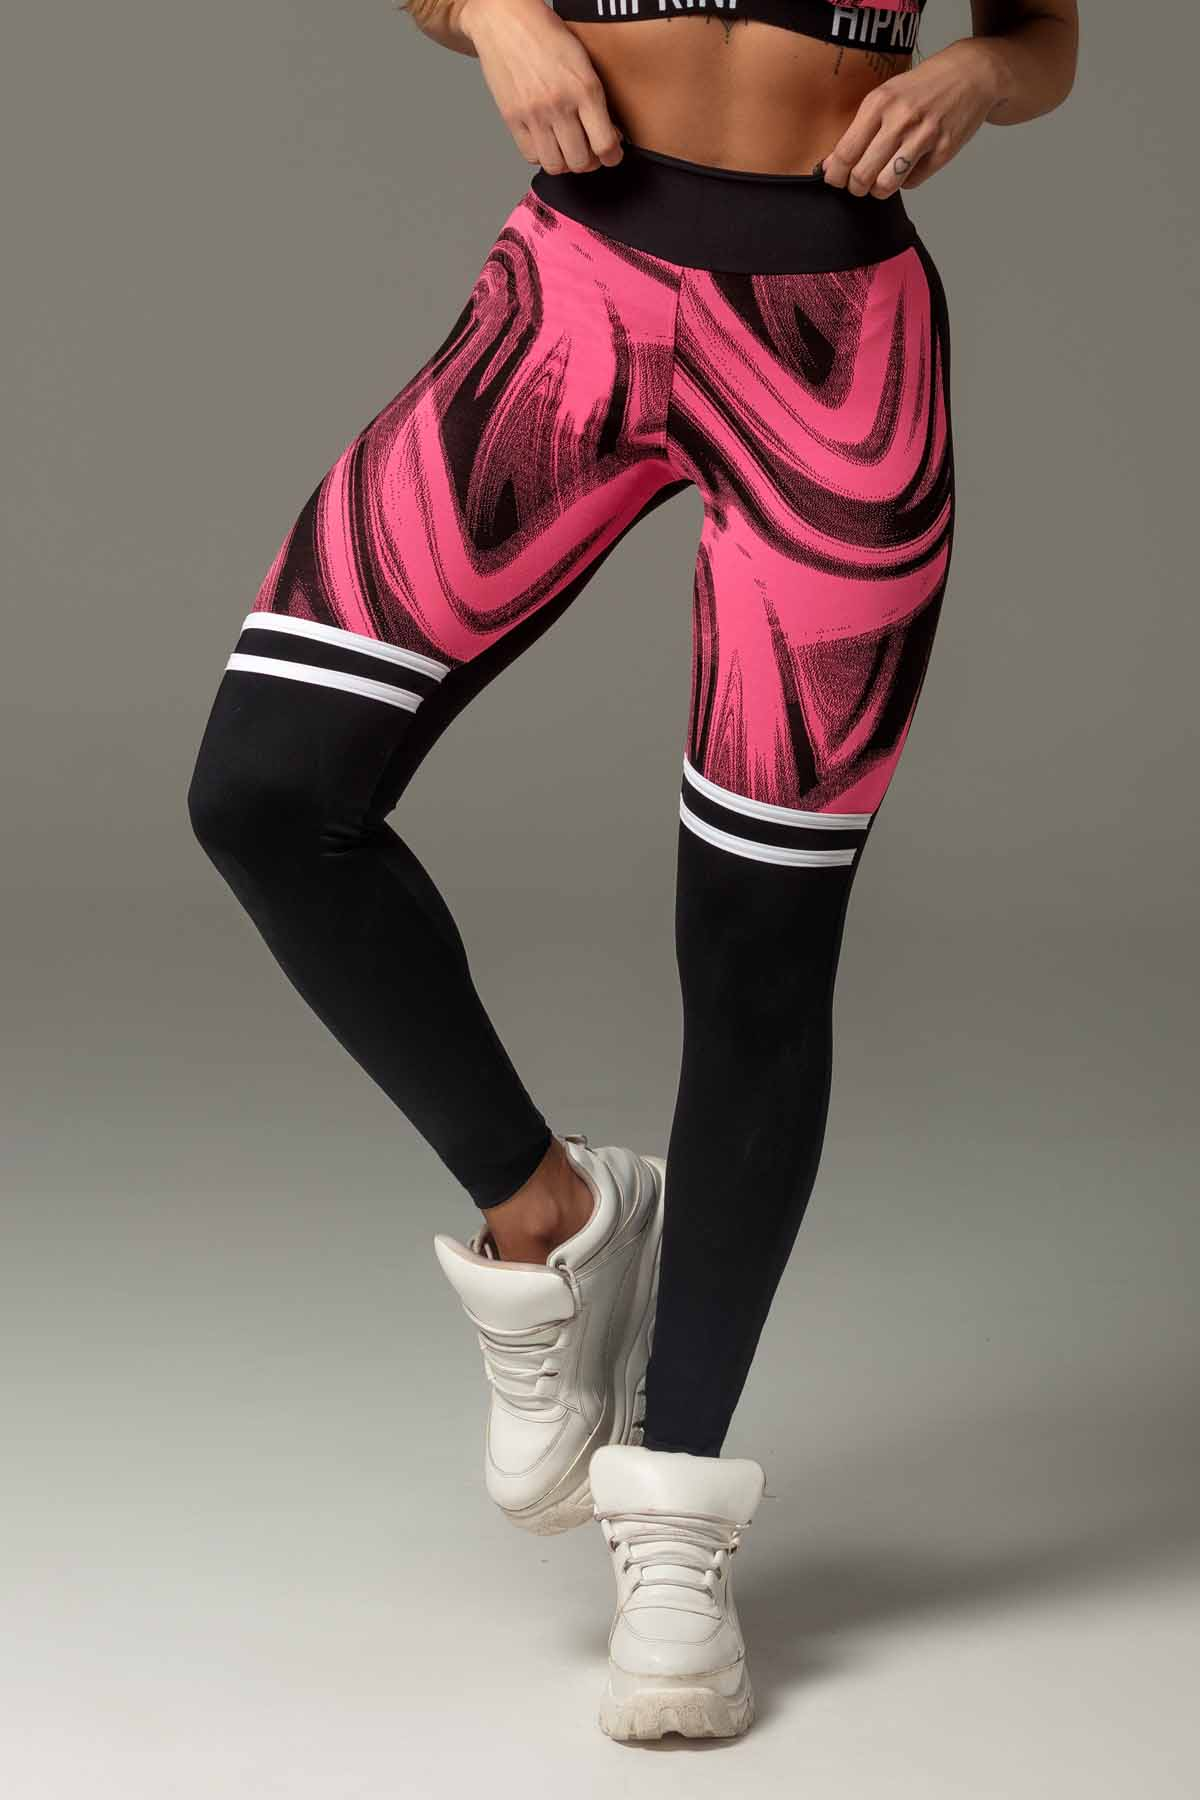 fitness_leggings_pink_3338045